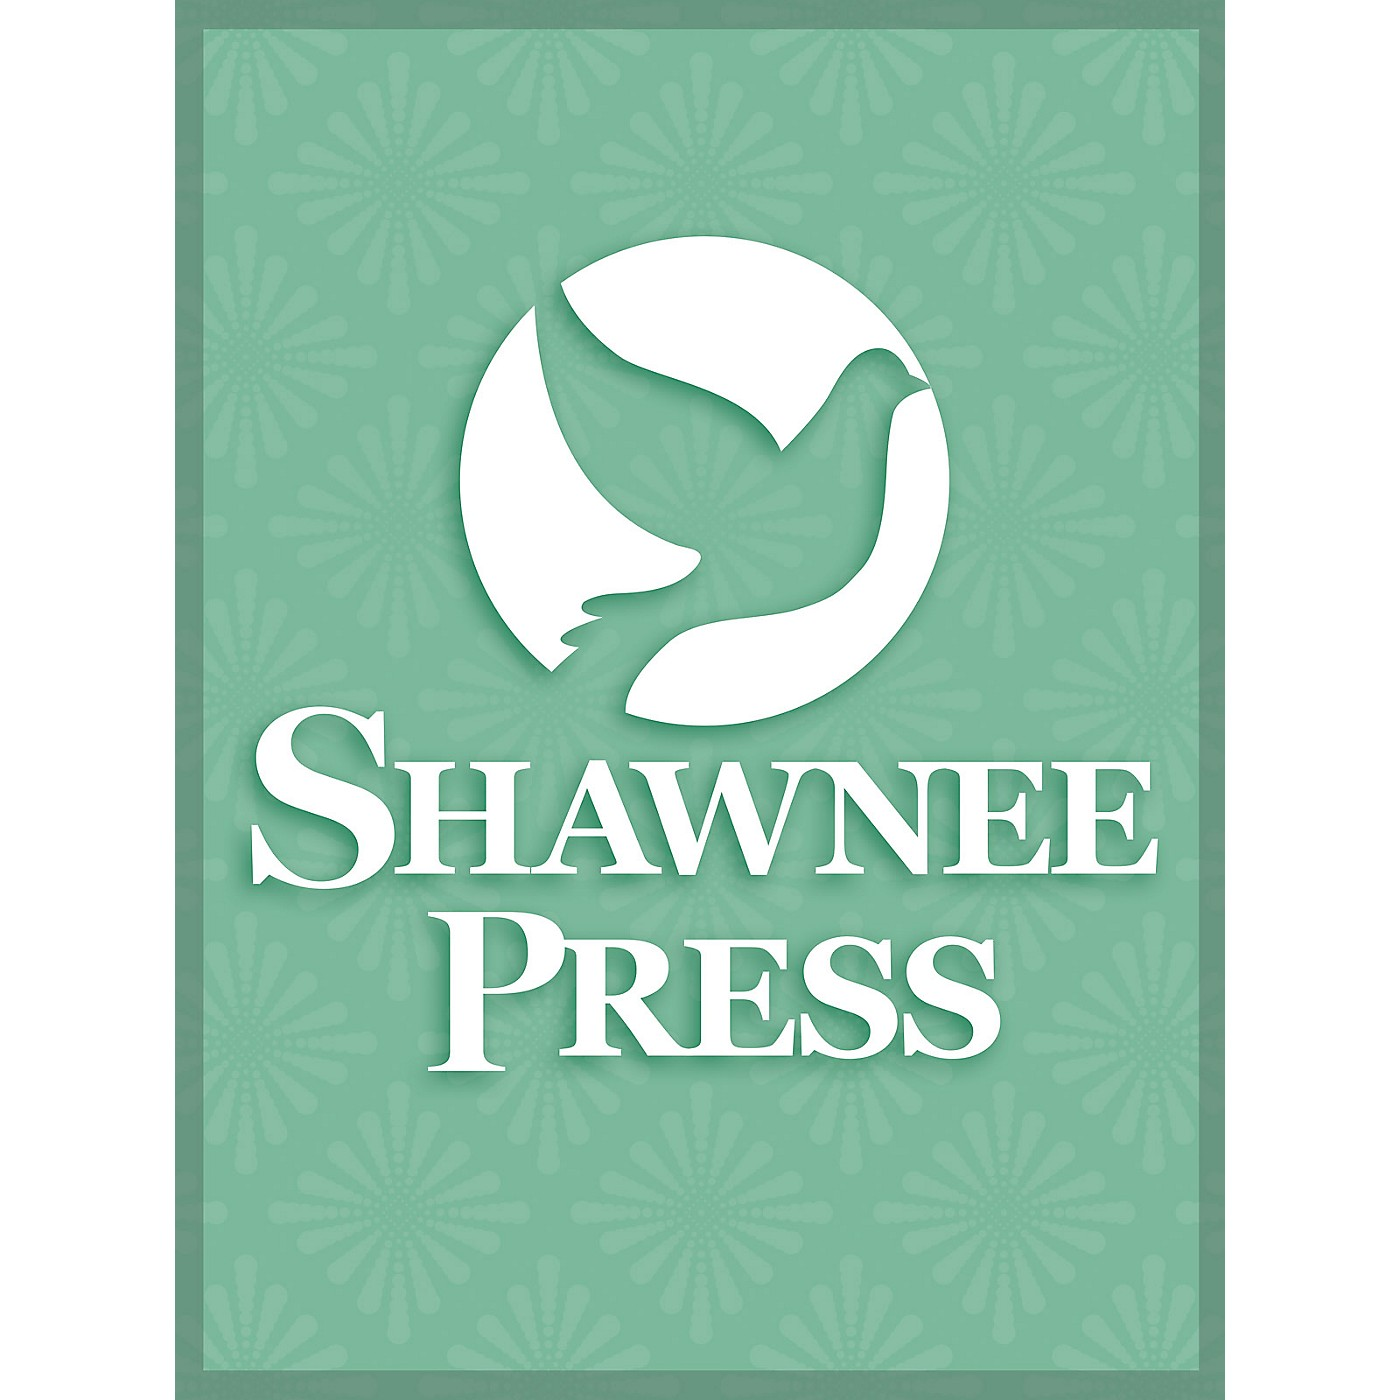 Shawnee Press Thank You for the Music UNIS/2PT by ABBA Arranged by Hawley Ades thumbnail